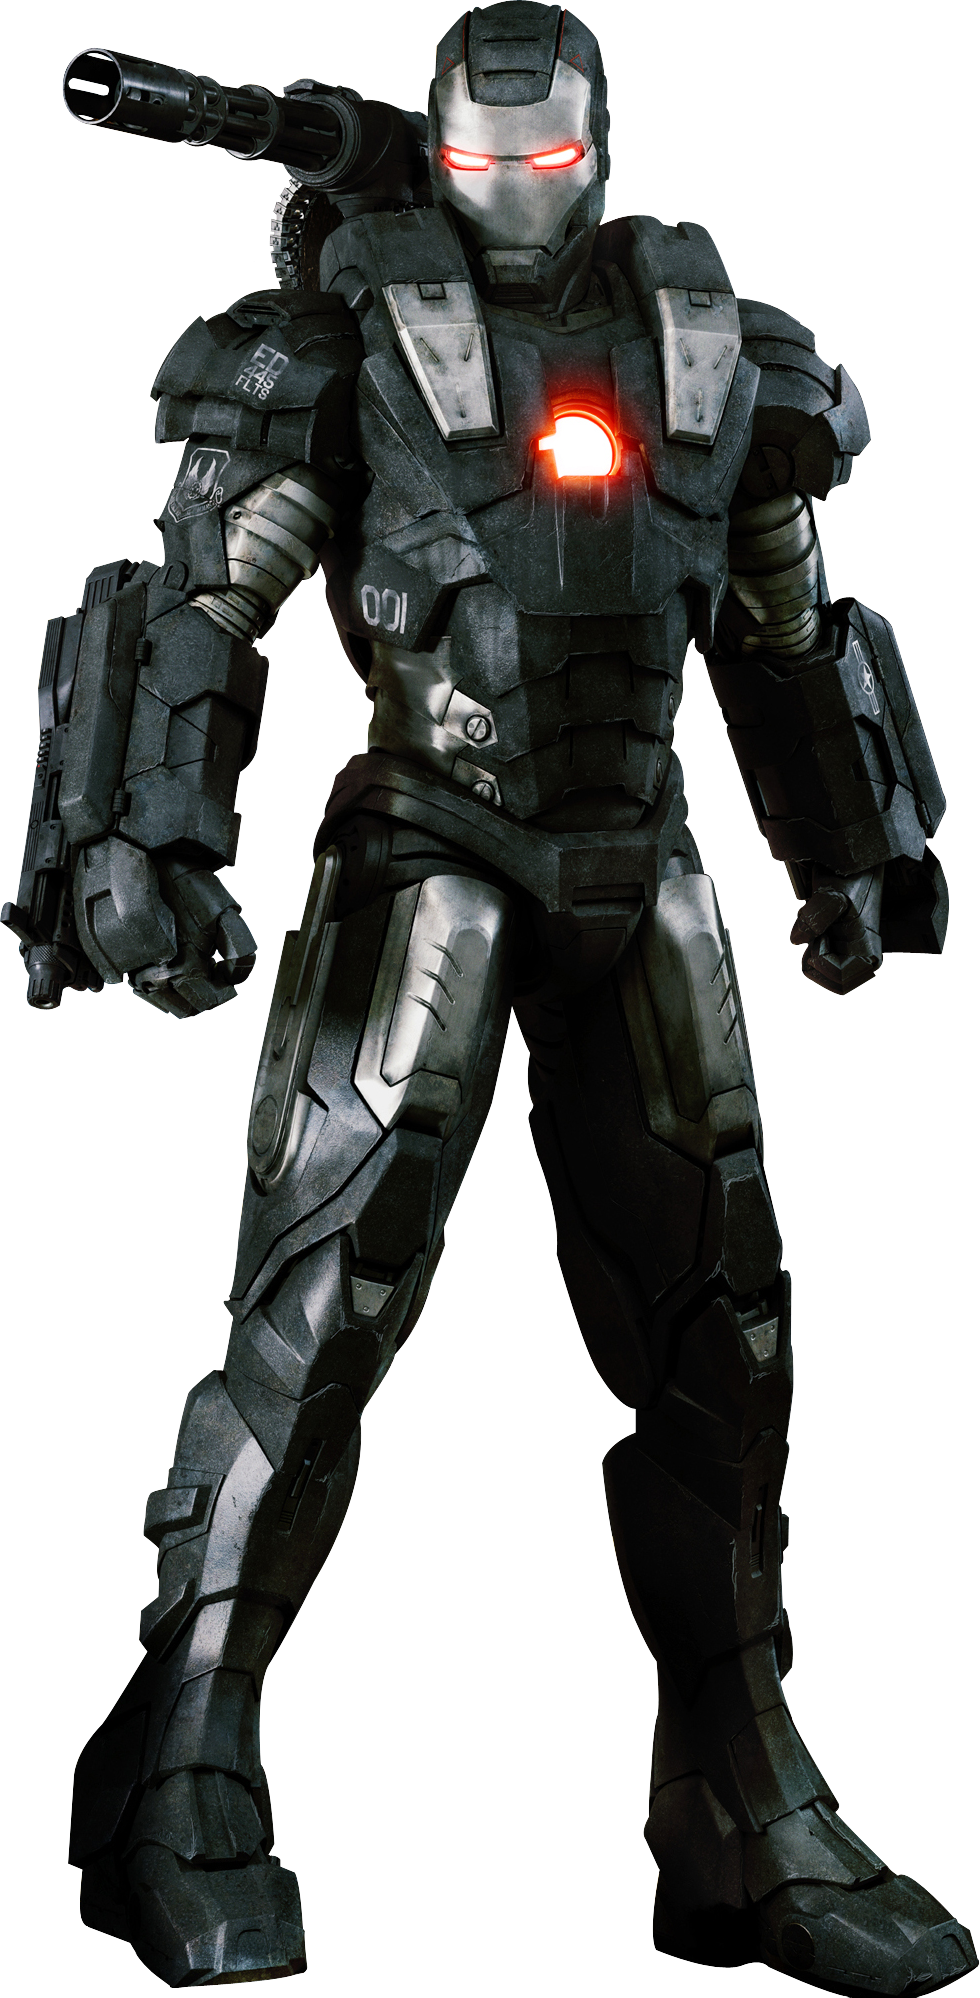 War machine infinity war png. Image earth marvel movies